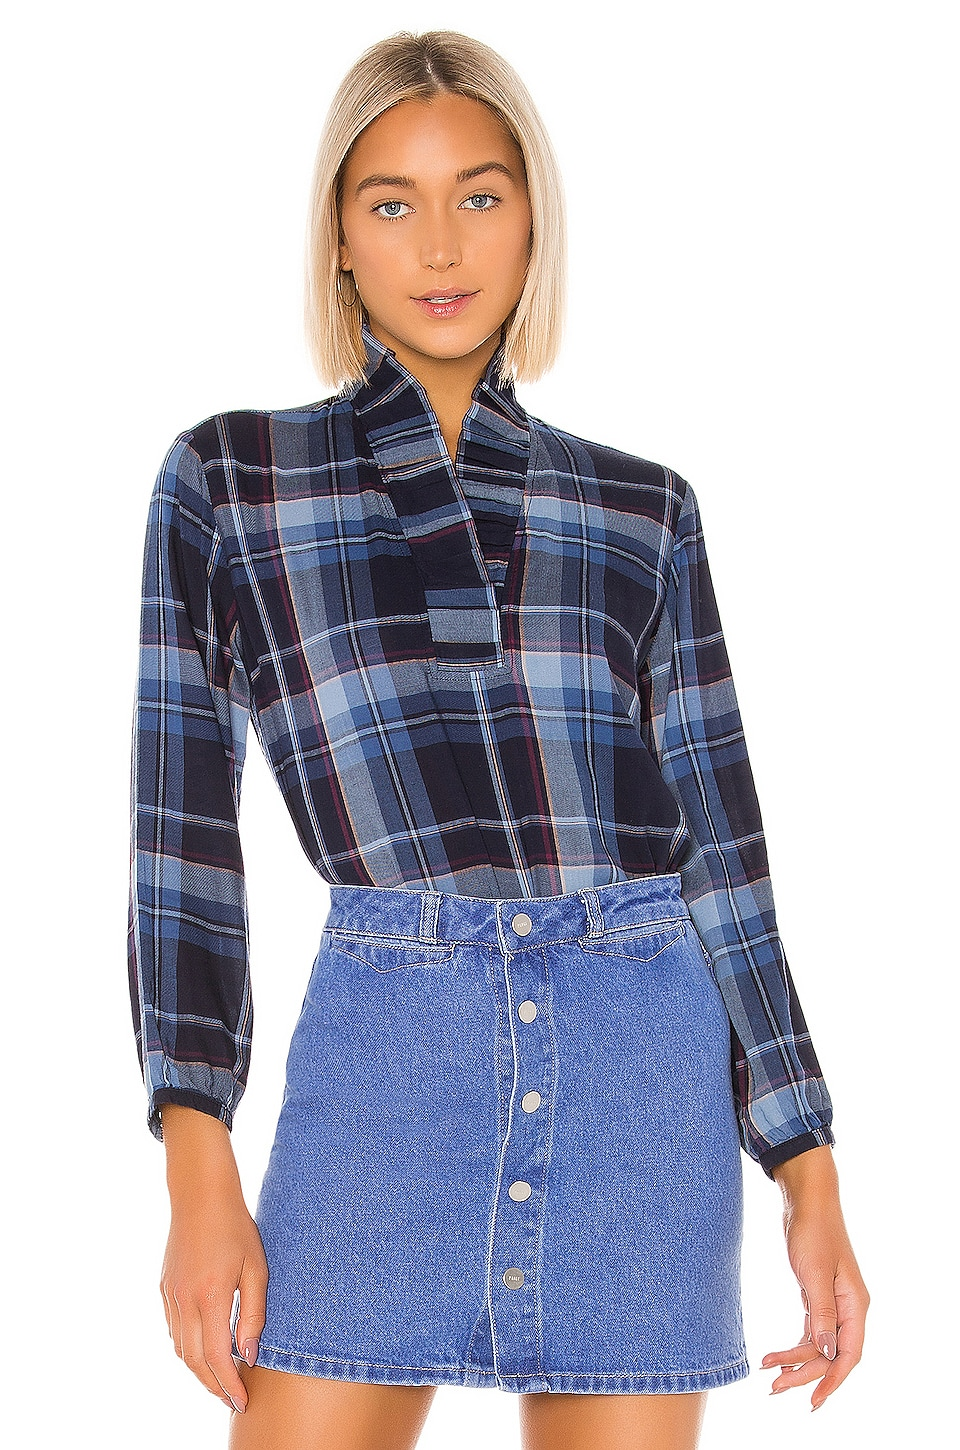 Birds of Paradis by Trovata Erica Pleated Collar Blouse in Blue Plaid